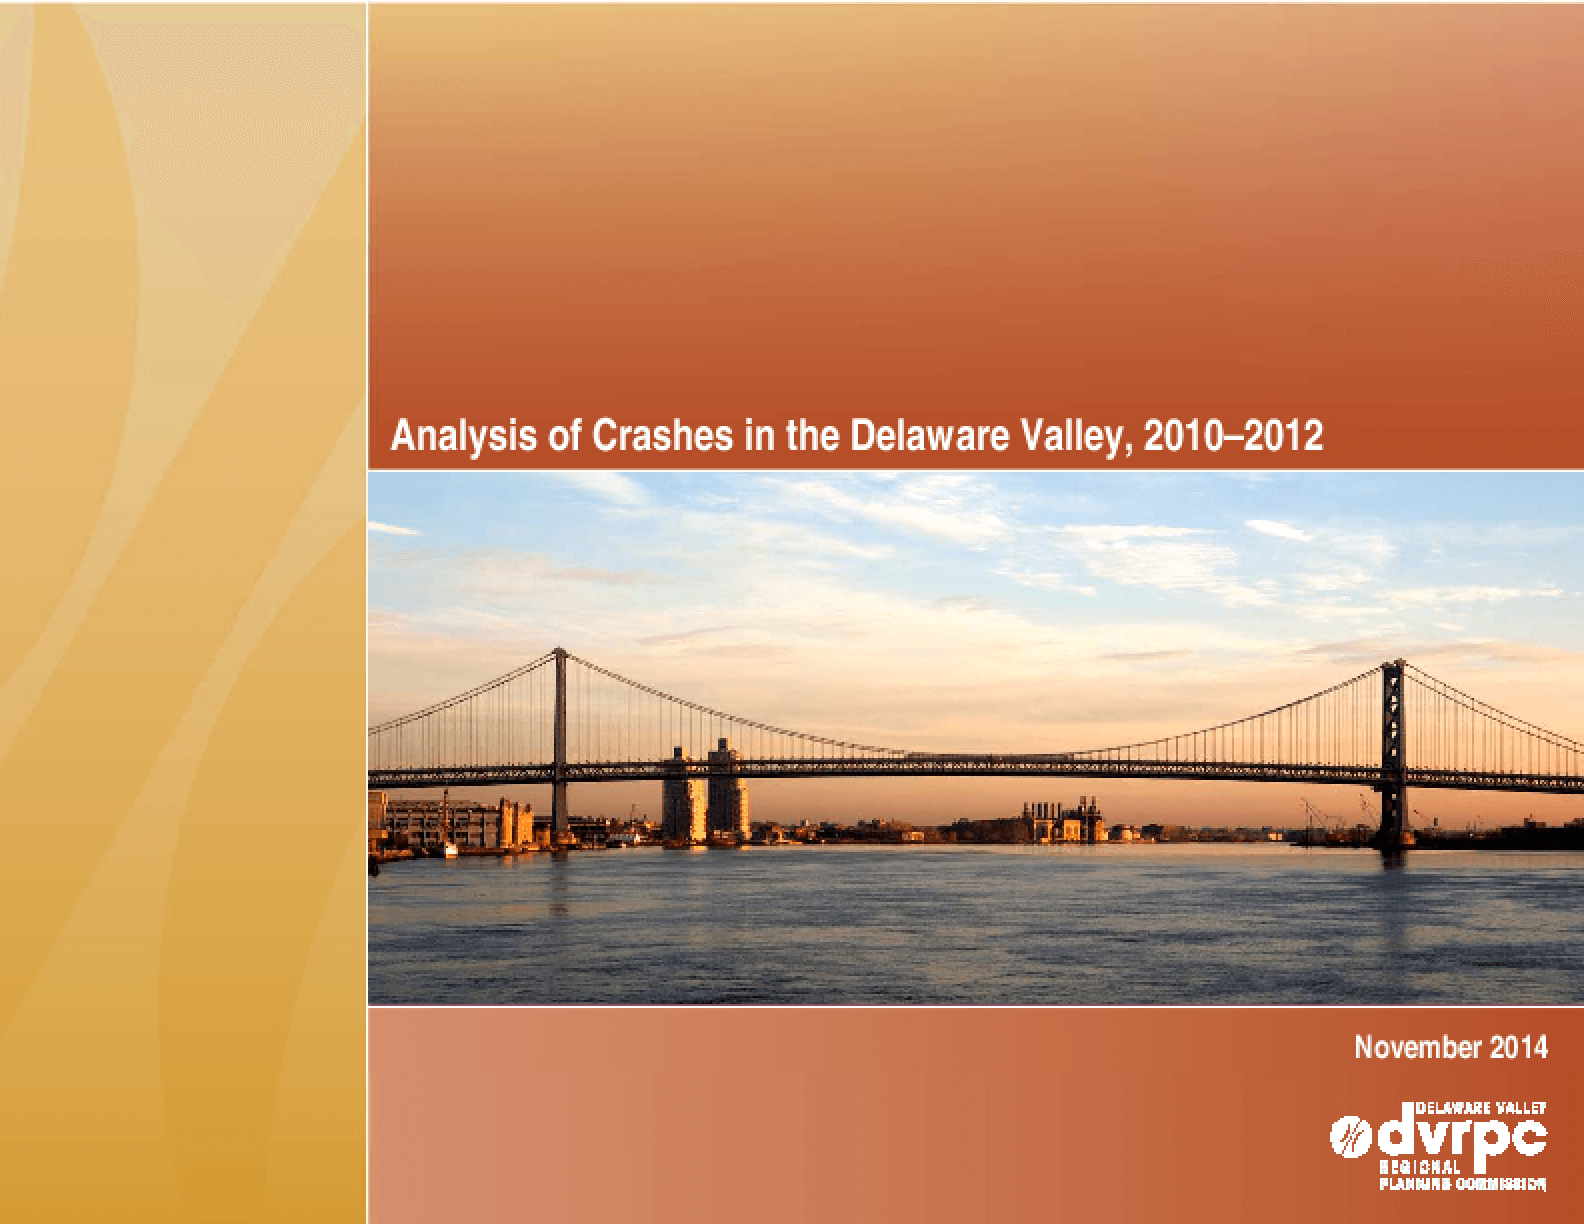 Analysis of Crashes in the Delaware Valley, 2010 - 2012